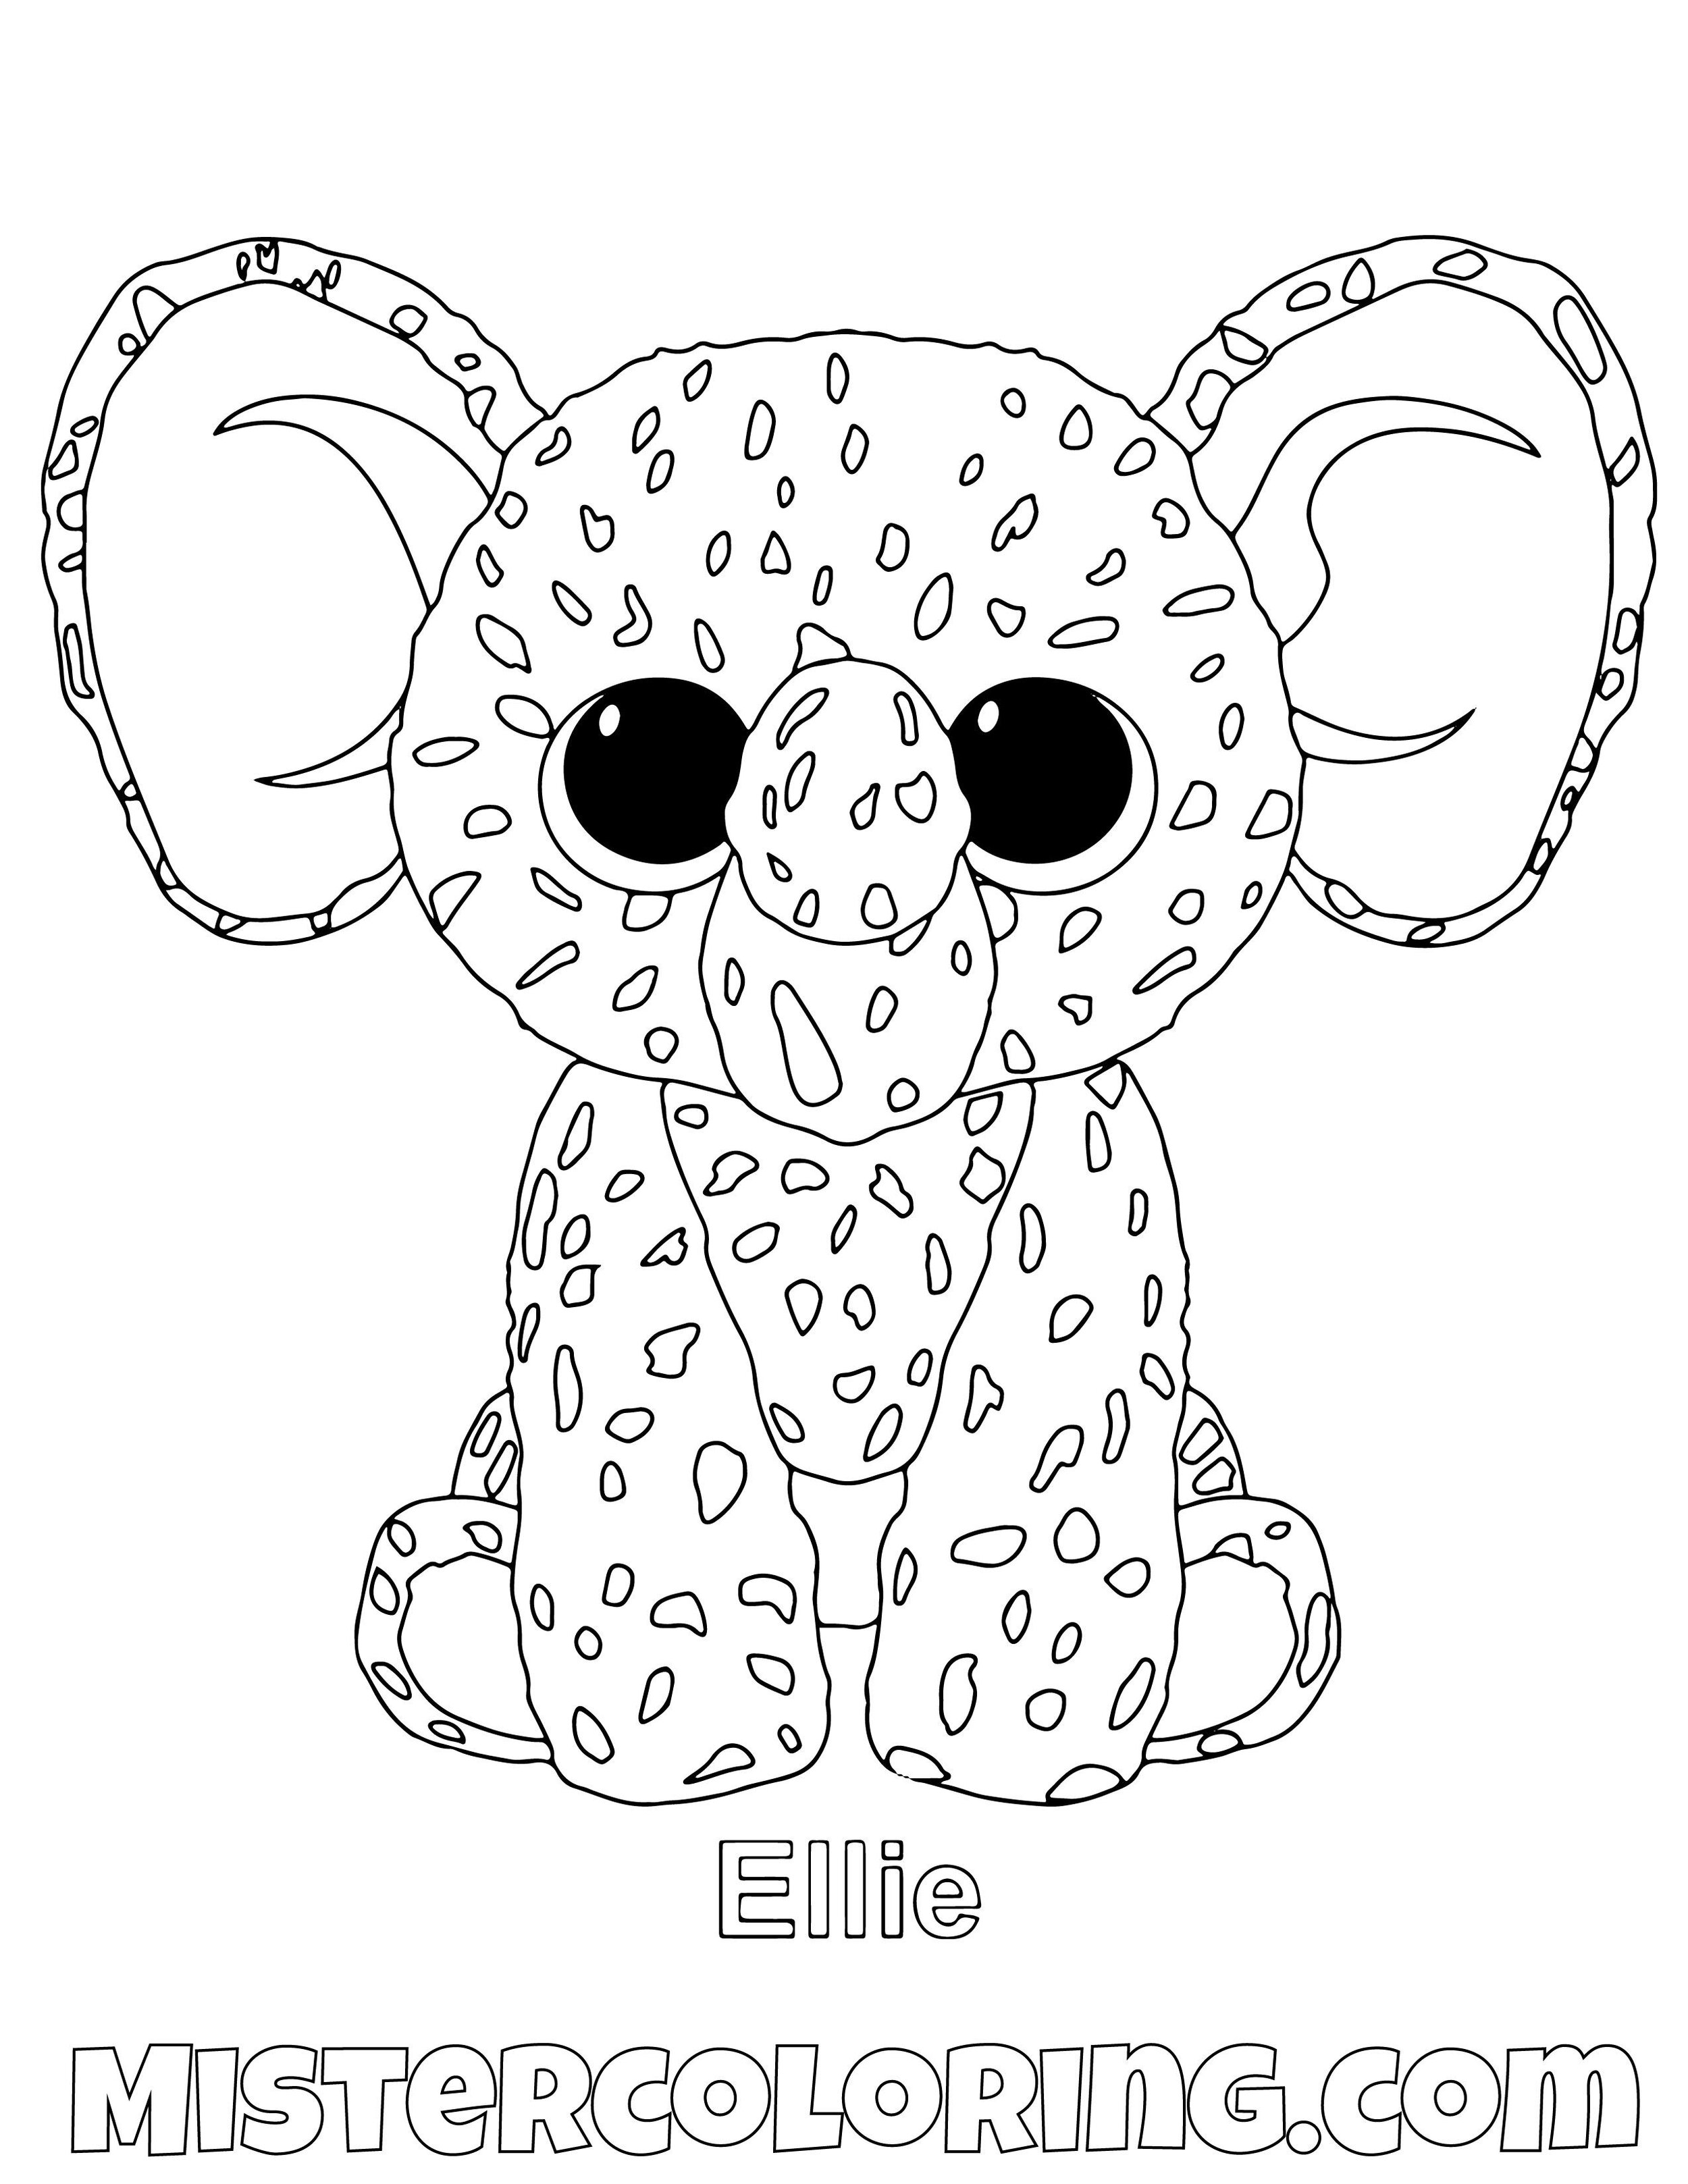 - Beanie Boo Coloring Pages For Kids — Mister Coloring